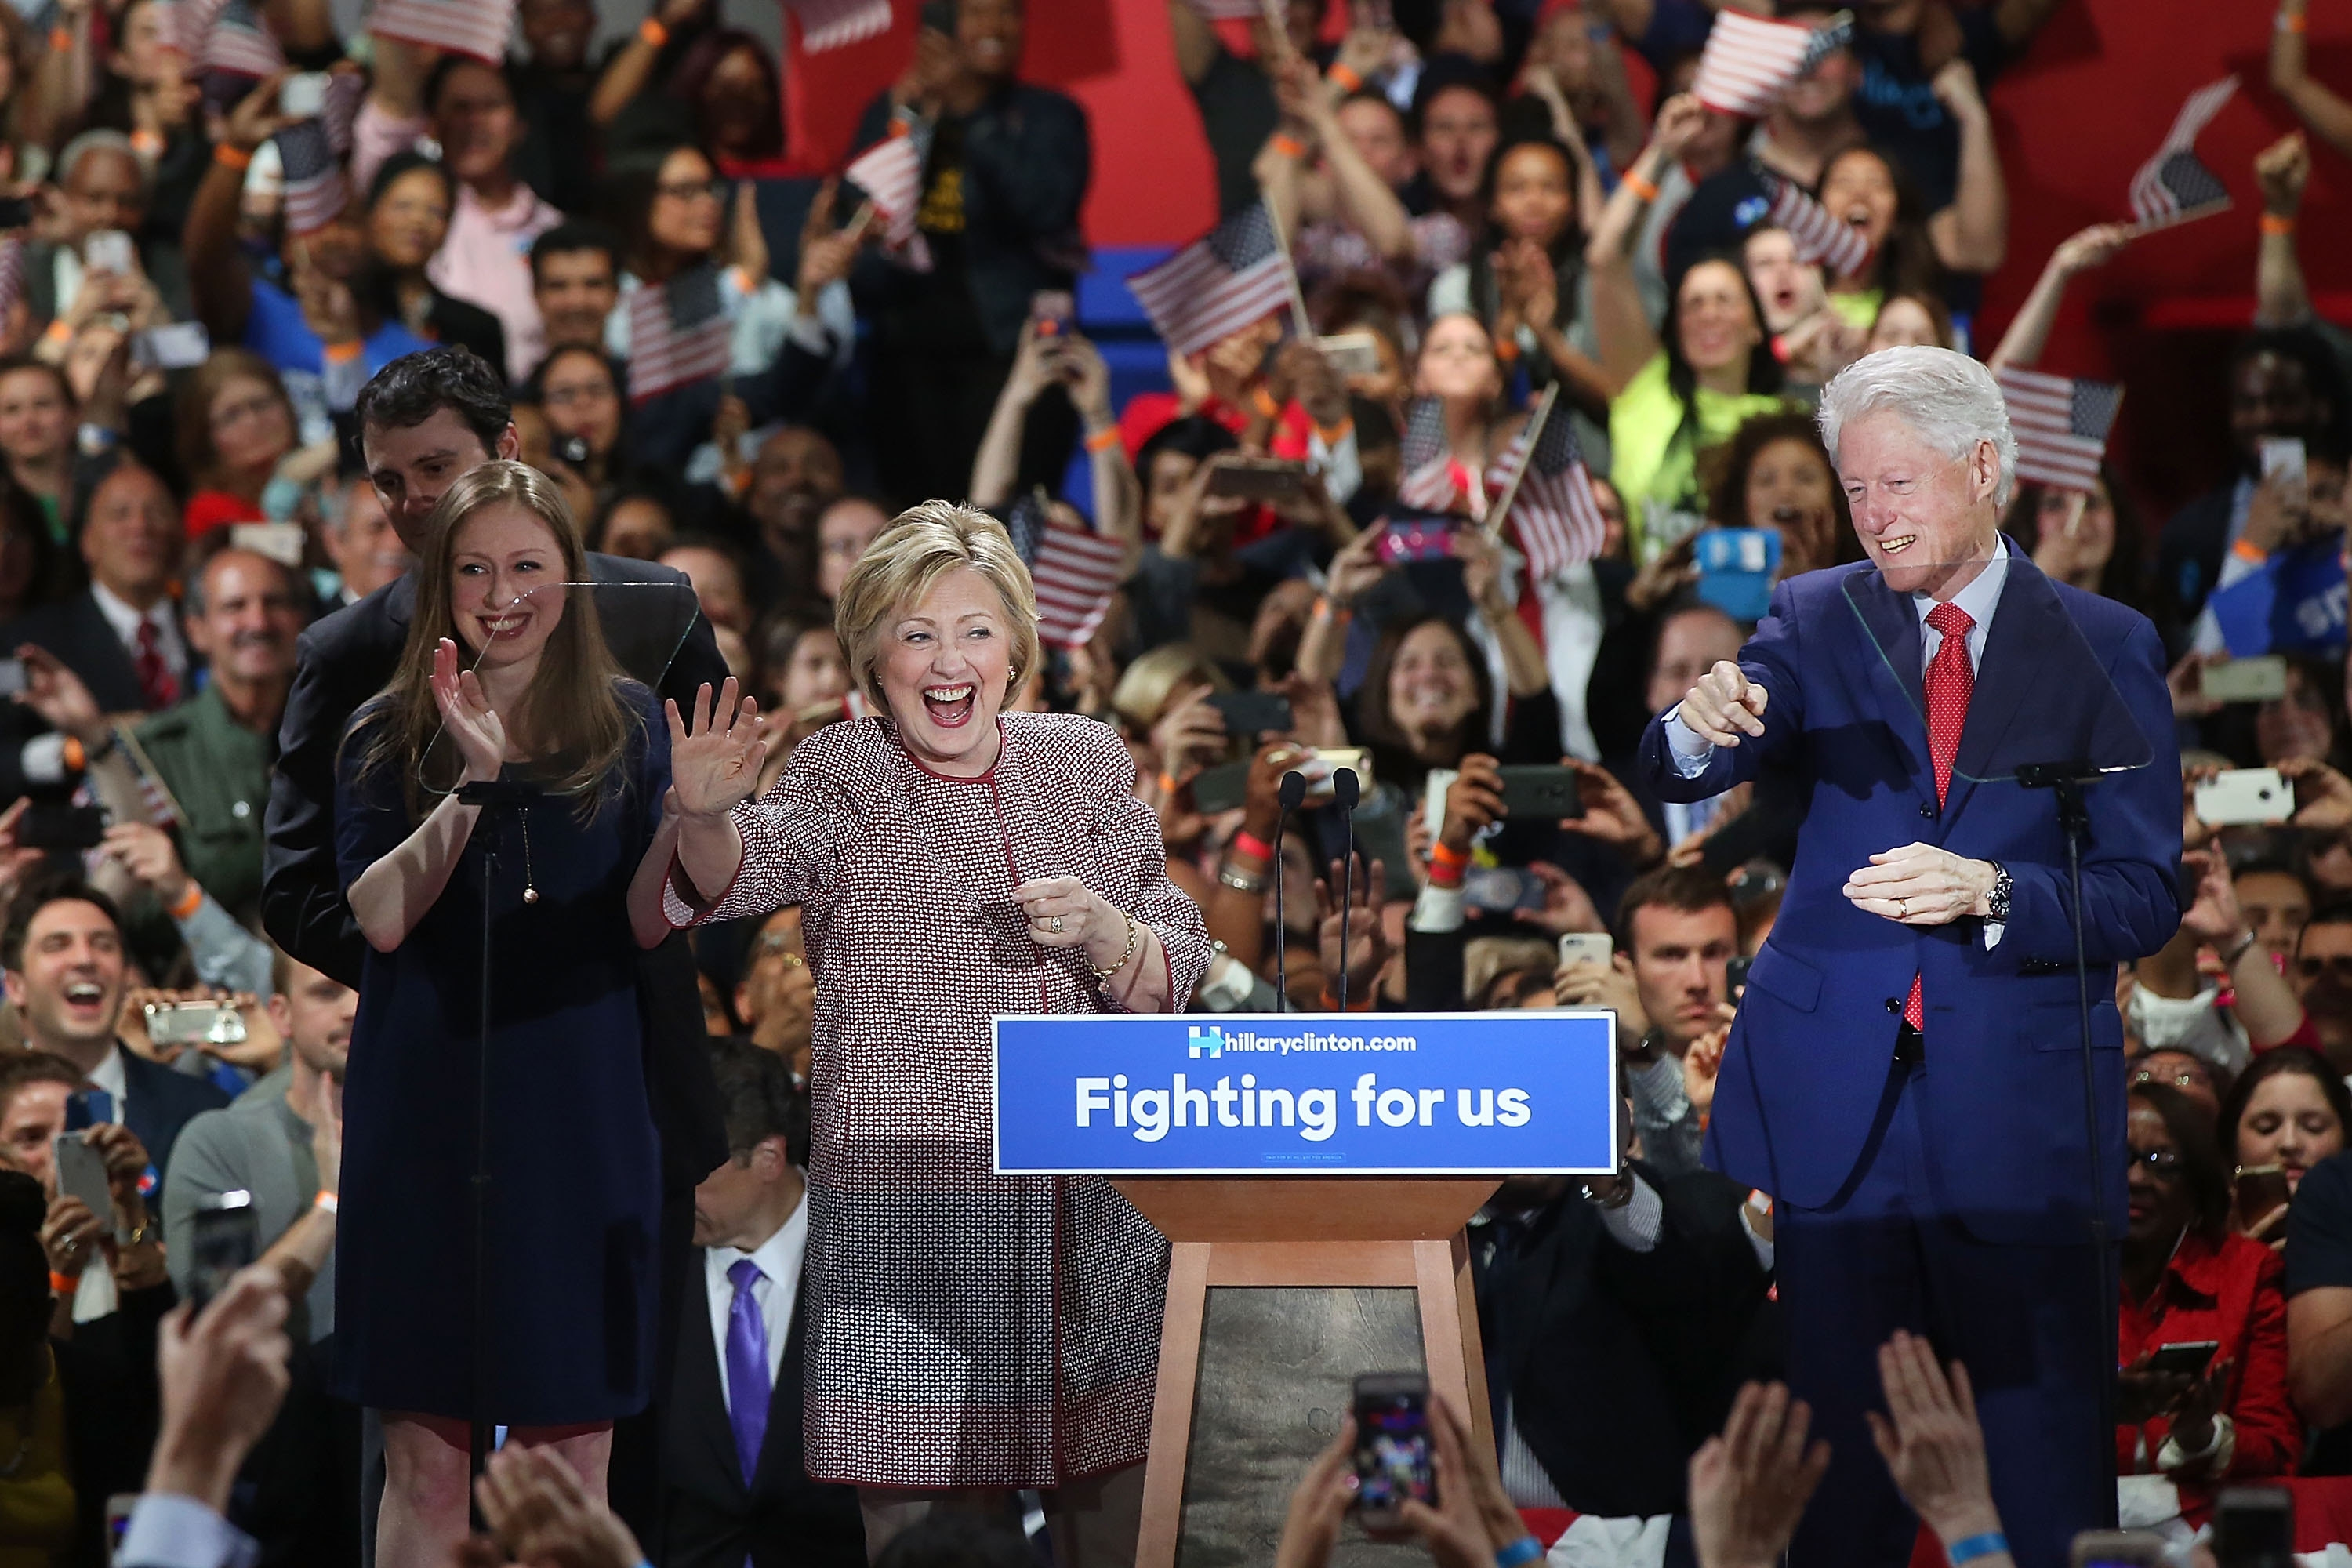 NEW YORK, NY - APRIL 19:  Democratic presidential candidate Hillary Clinton walks on stage with her husband Bill Clinton, daughter Chelsea and son-in-law Marc Mezvinsky after winning the highly contested New York primary on April 19, 2016 in New York City. Clinton, who had enjoyed a large lead over her rival Bernie Sanders only months ago, saw that lead shrink as the Sanders campaign made inroads with younger and more liberal voters.  (Photo by Spencer Platt/Getty Images)